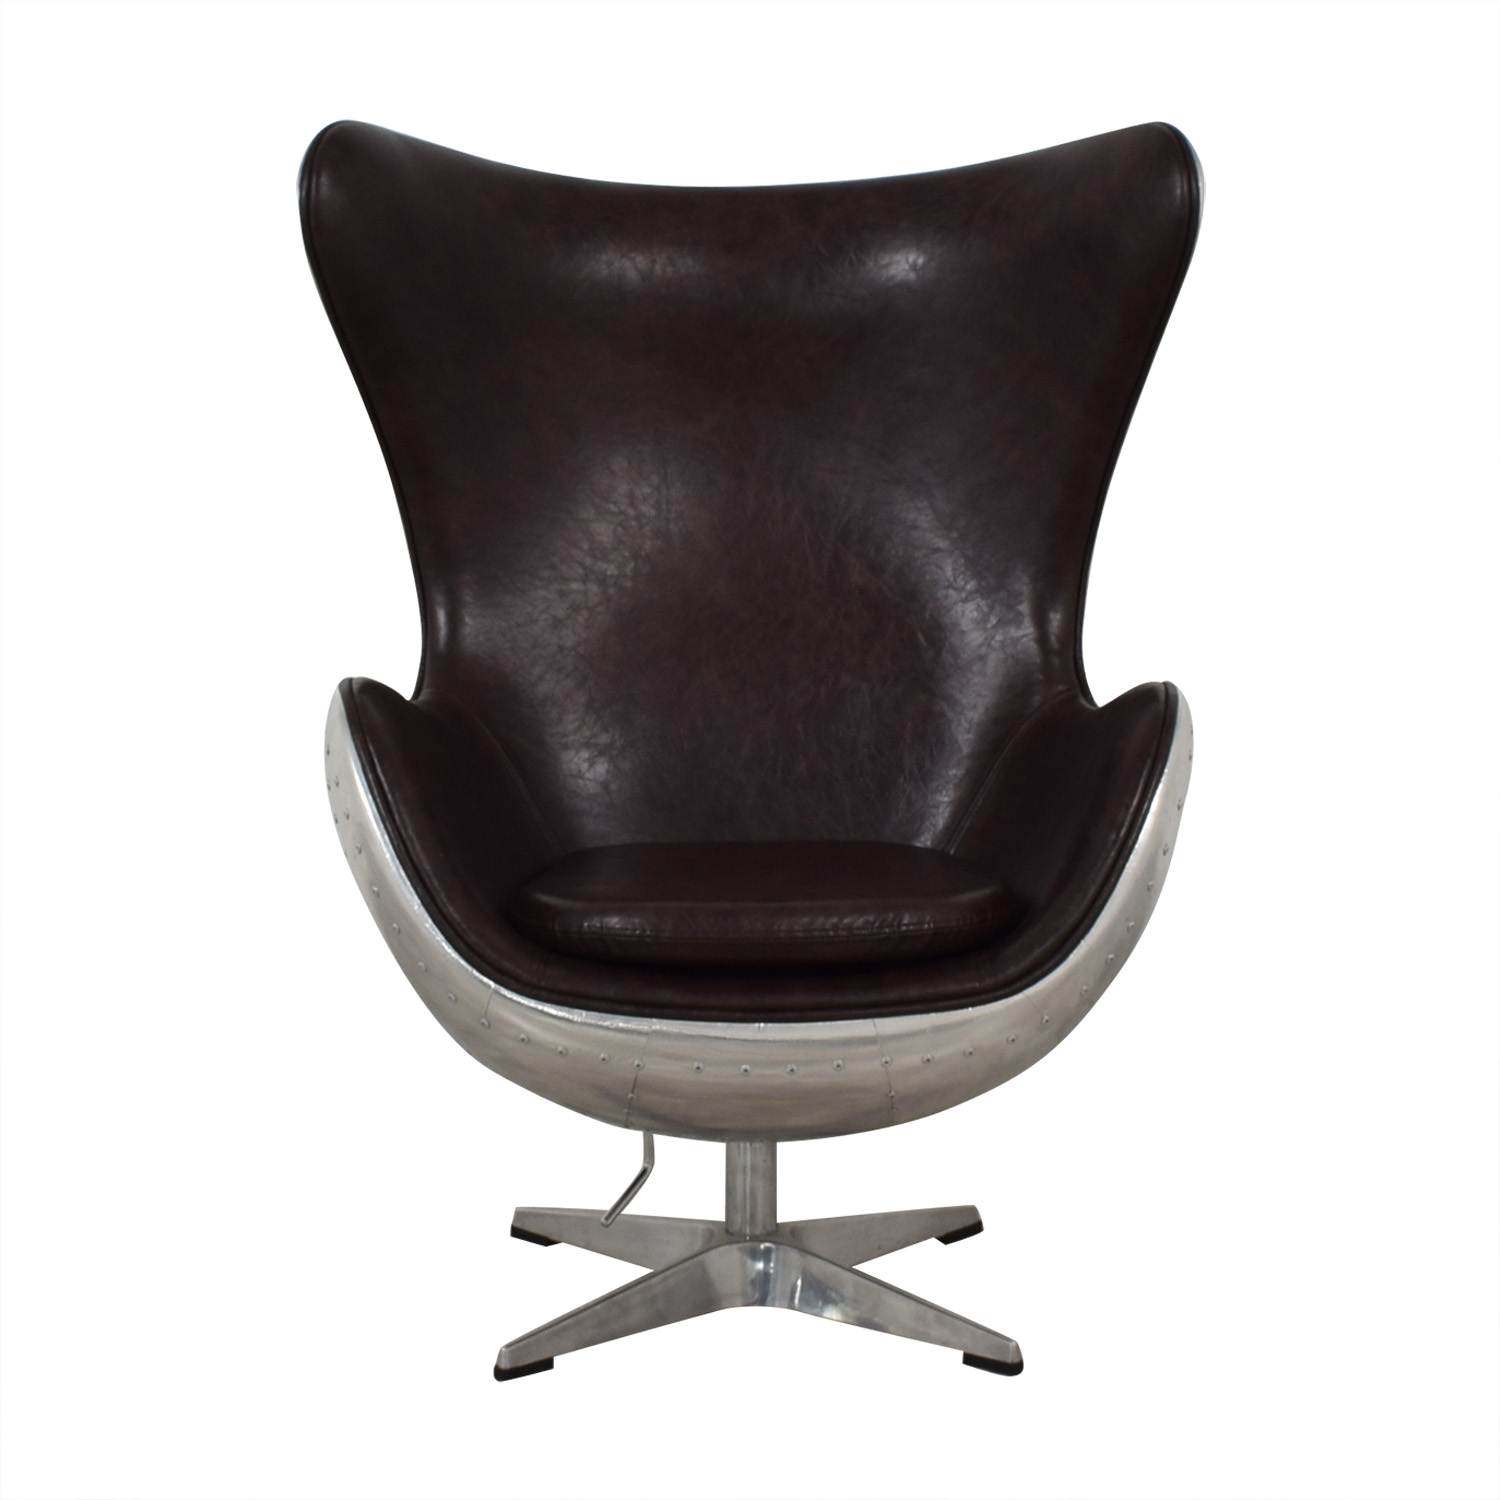 New Pacific Direct Axis Swivel Rocker Chair for sale